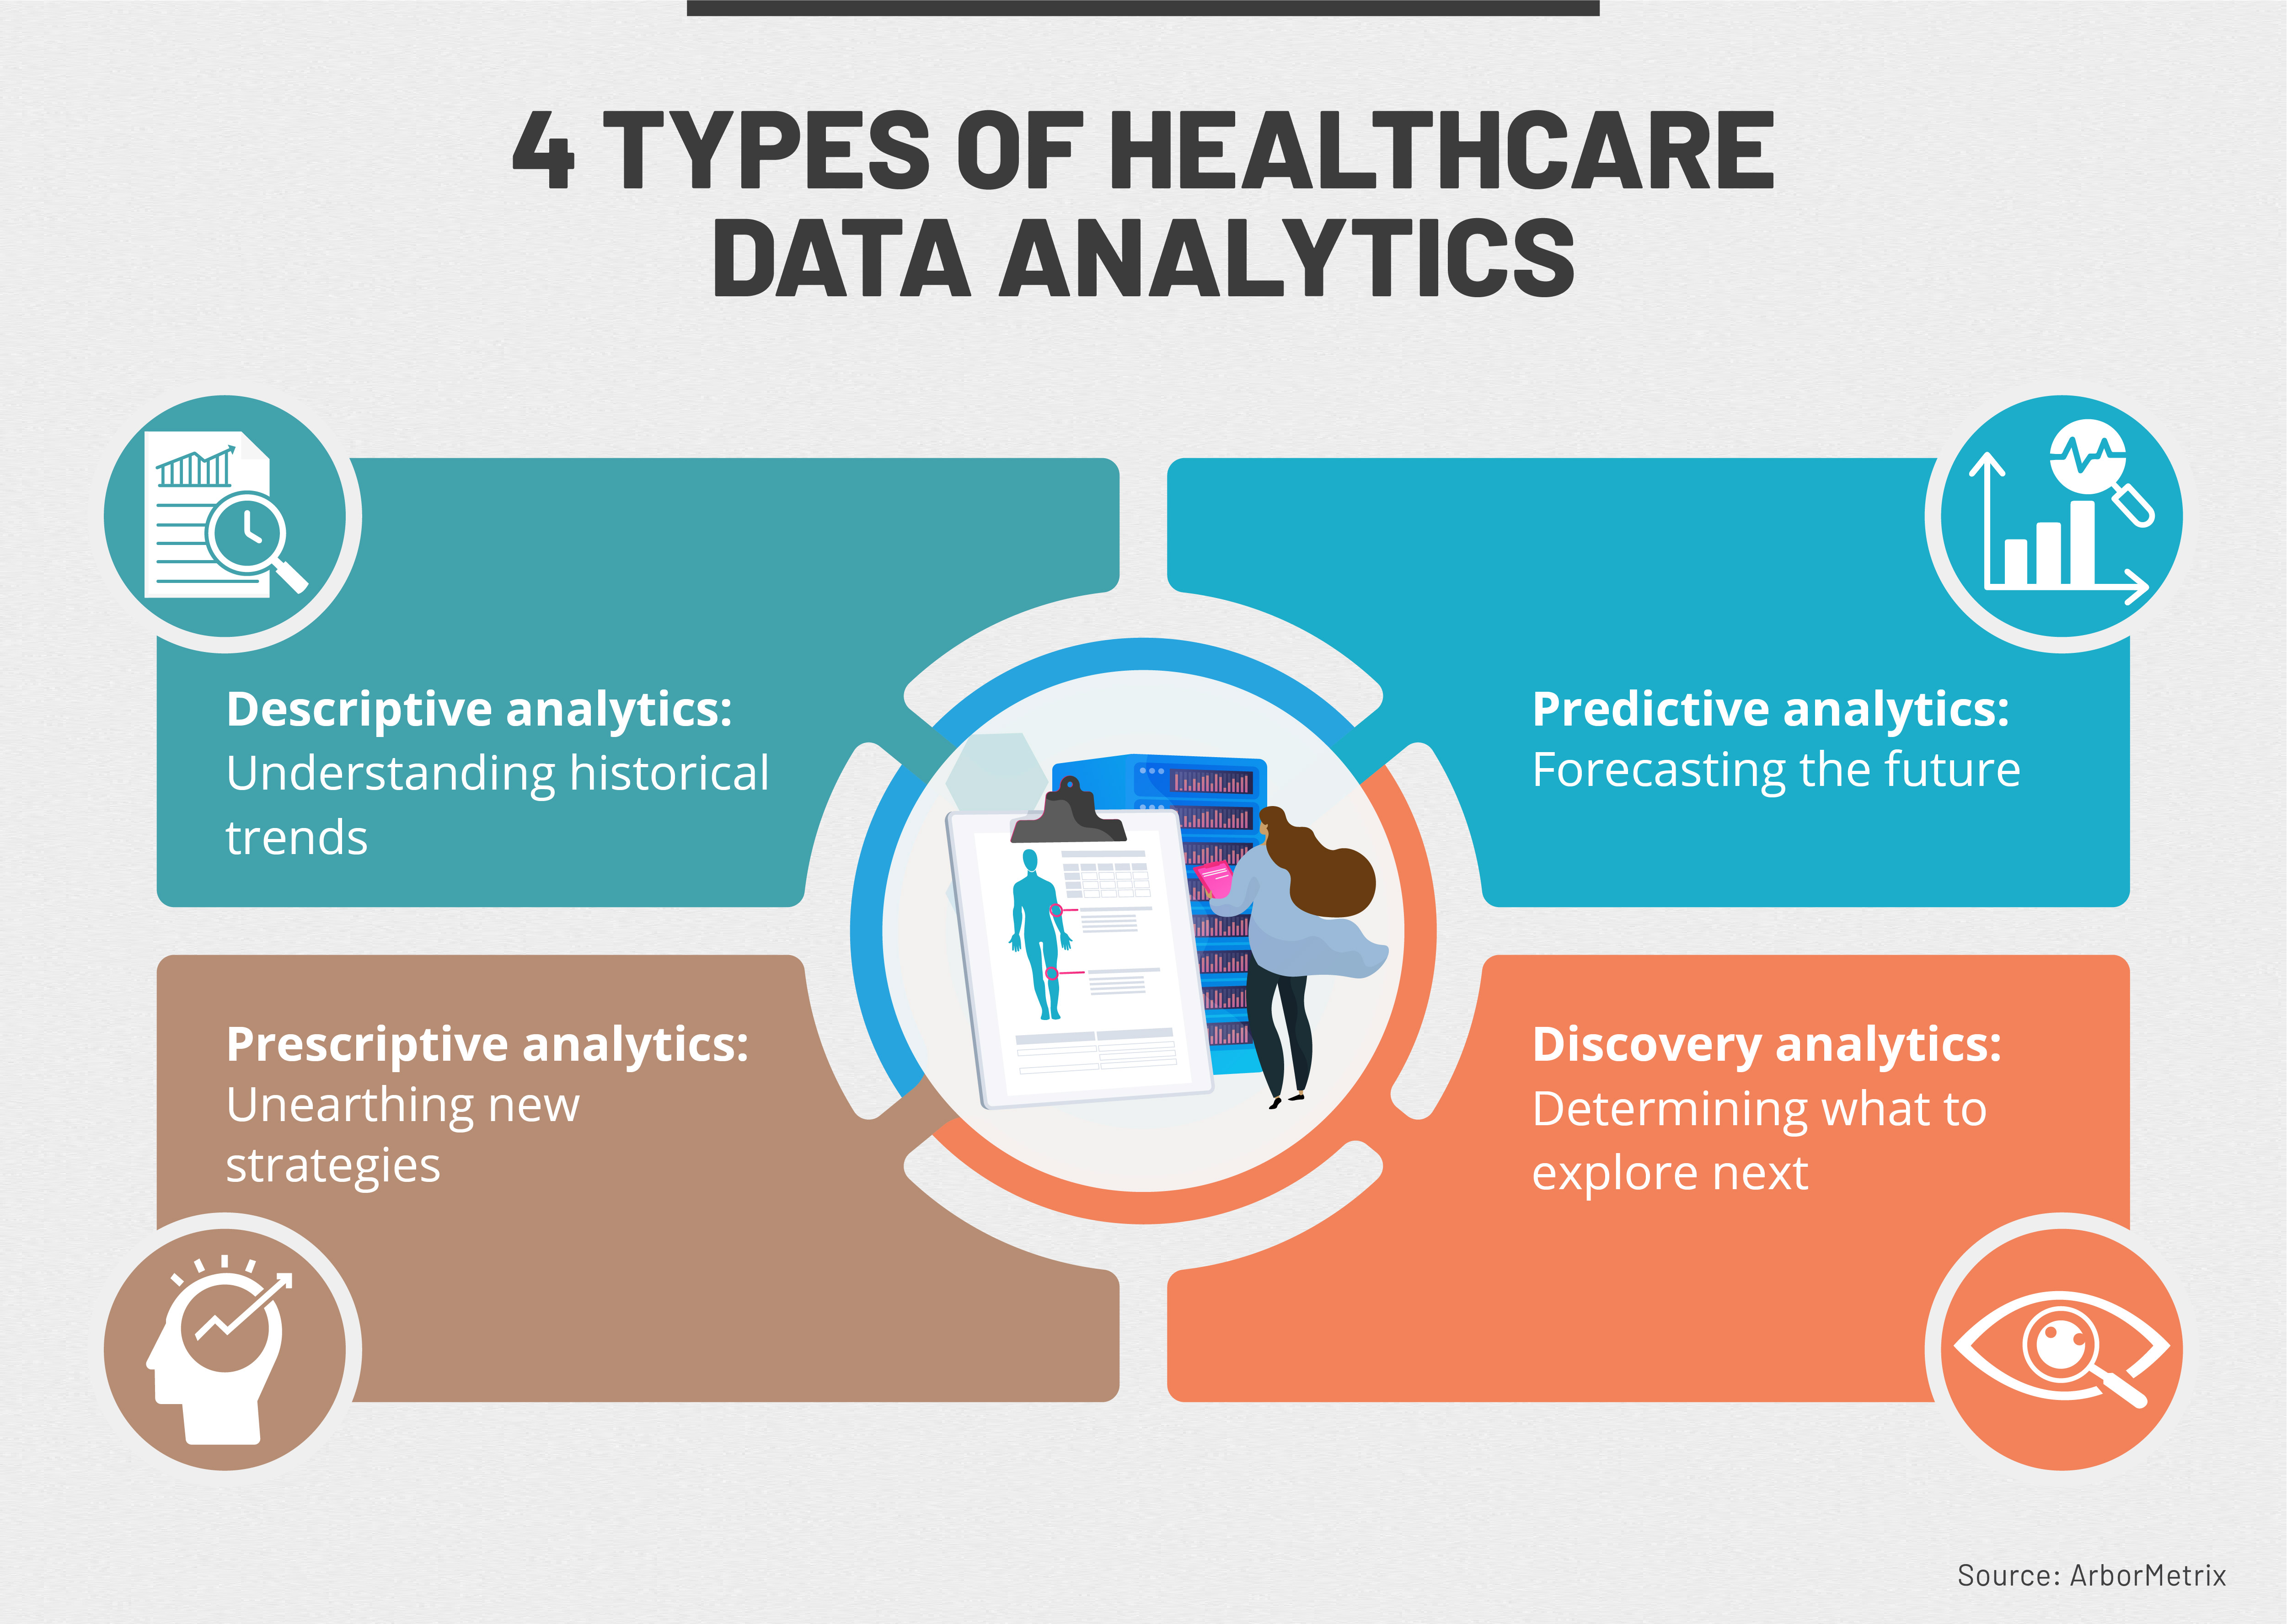 Four ways data analytics are used in healthcare